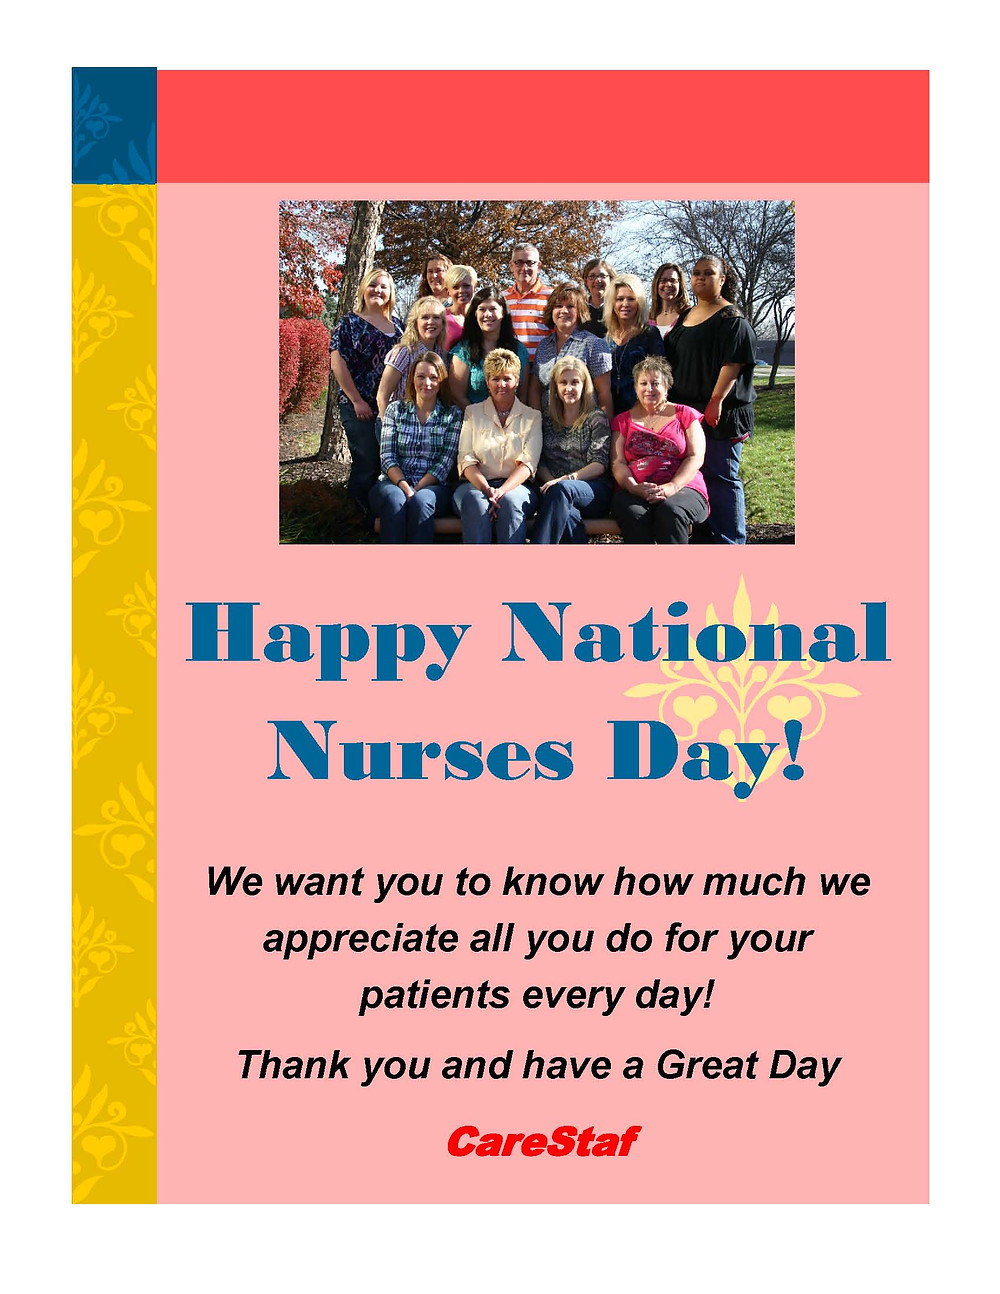 National Nurses Day - Thank you from CareStaf